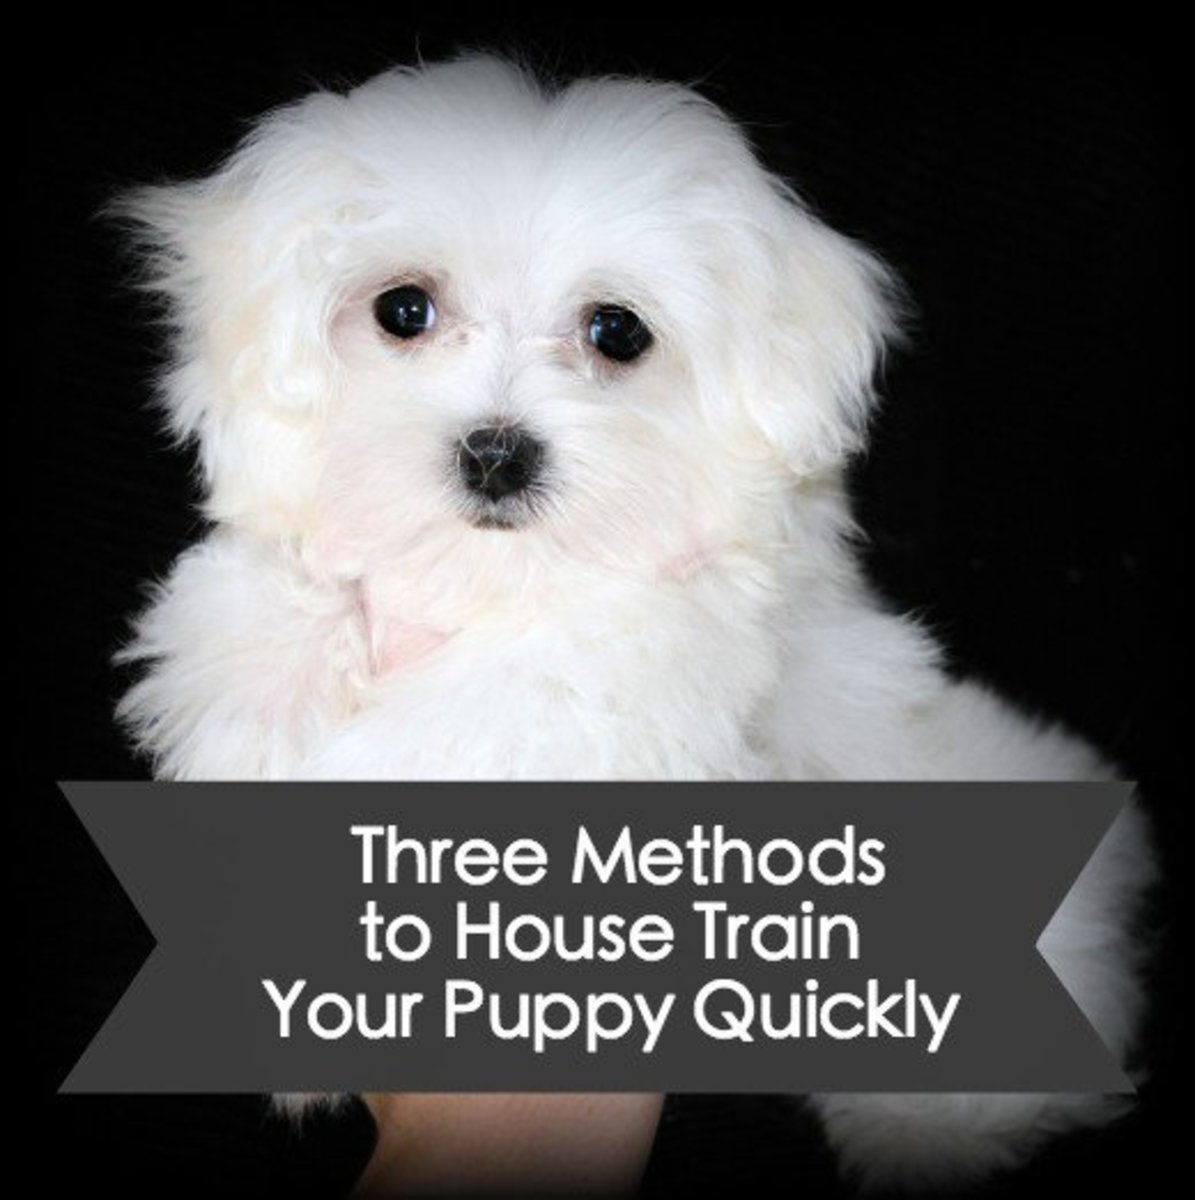 How To House Train A Puppy Fast Three Training Methods To Try Pethelpful By Fellow Animal Lovers And Experts